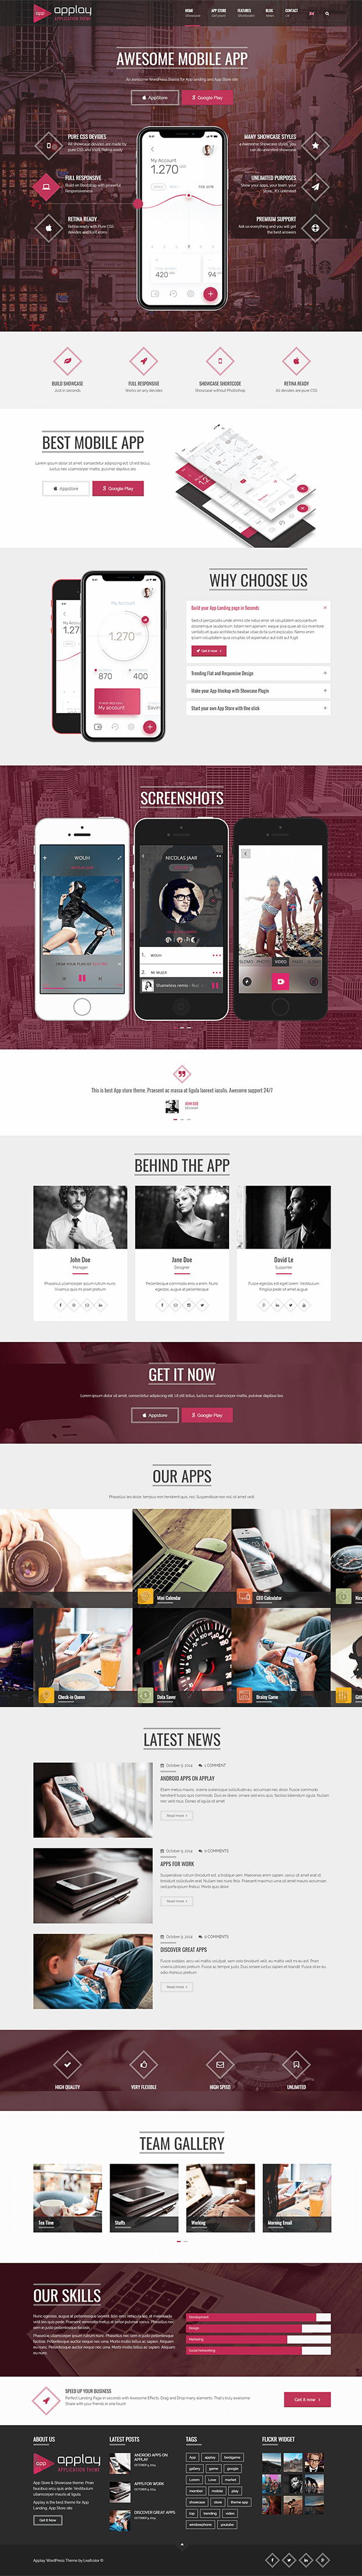 Home - App Store WordPress Theme